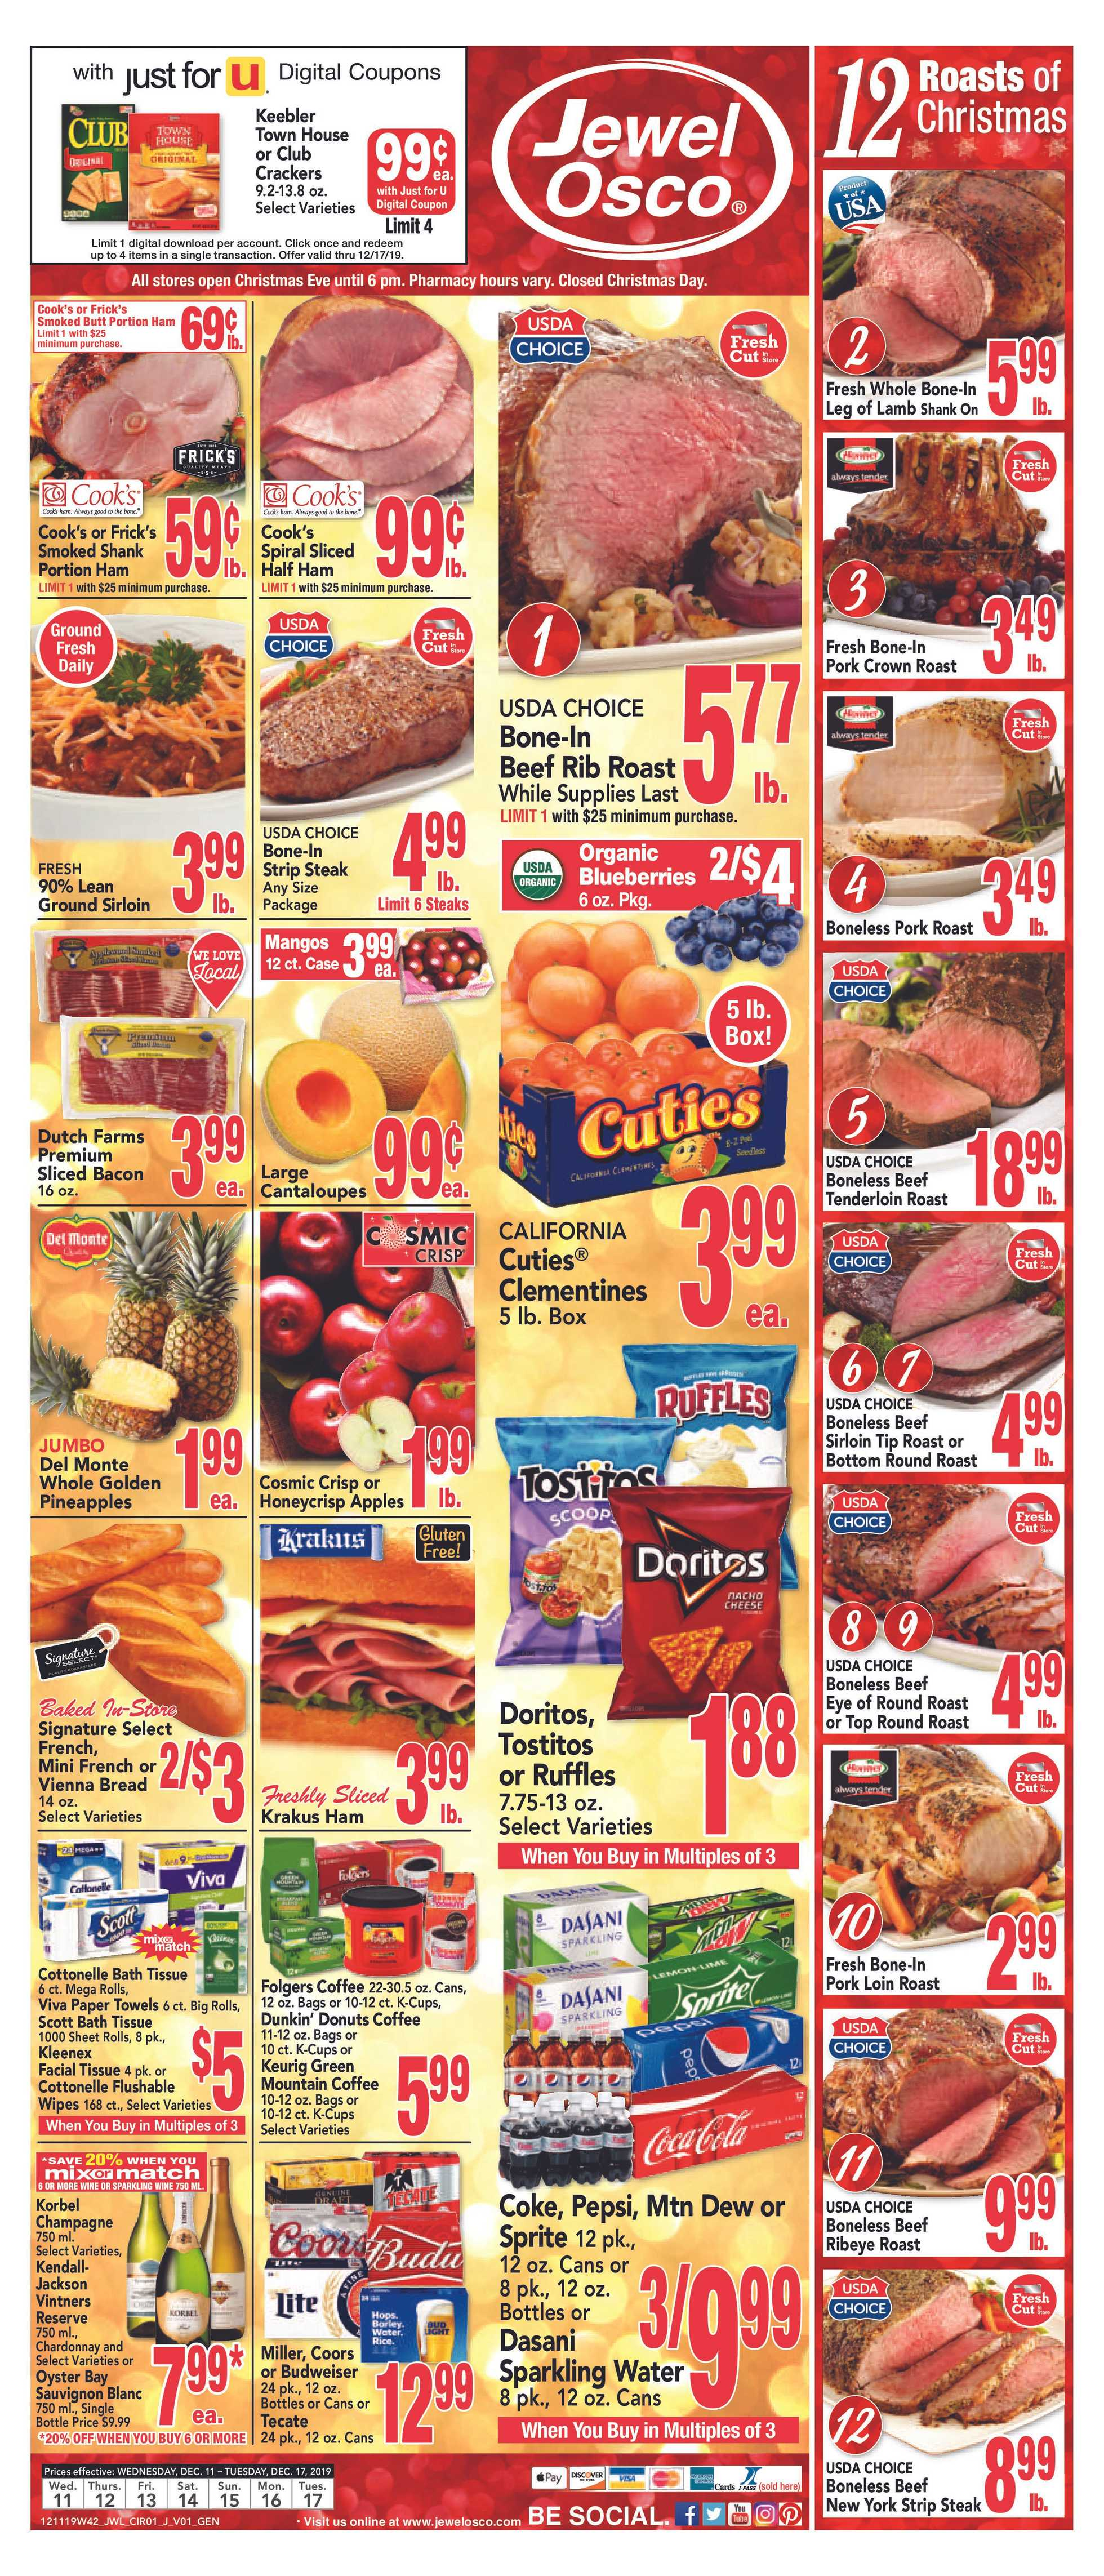 Jewel Osco - deals are valid from 12/11/19 to 12/17/19 - page 1.